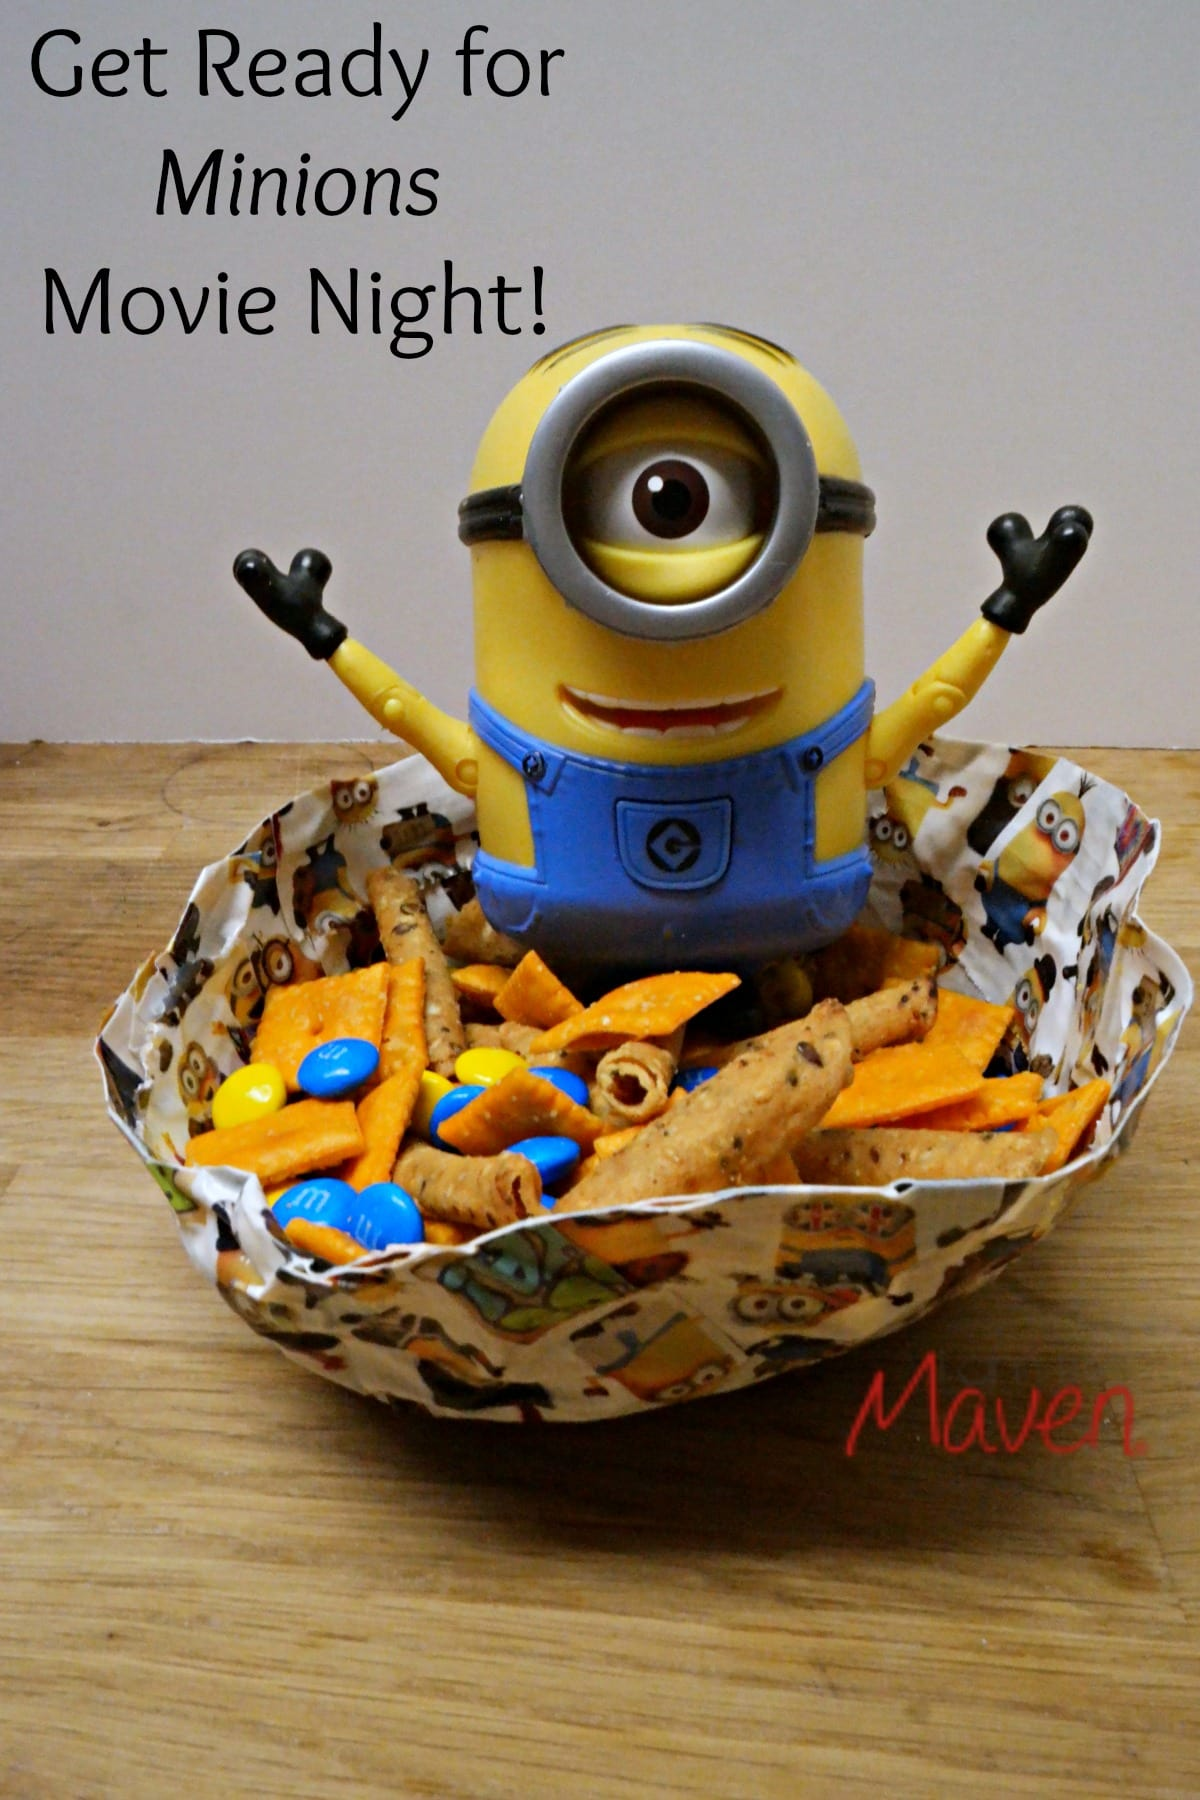 Get ready for Minions movie night with these two easy Minions Movie Snacks! #MinionsMovieNight AD